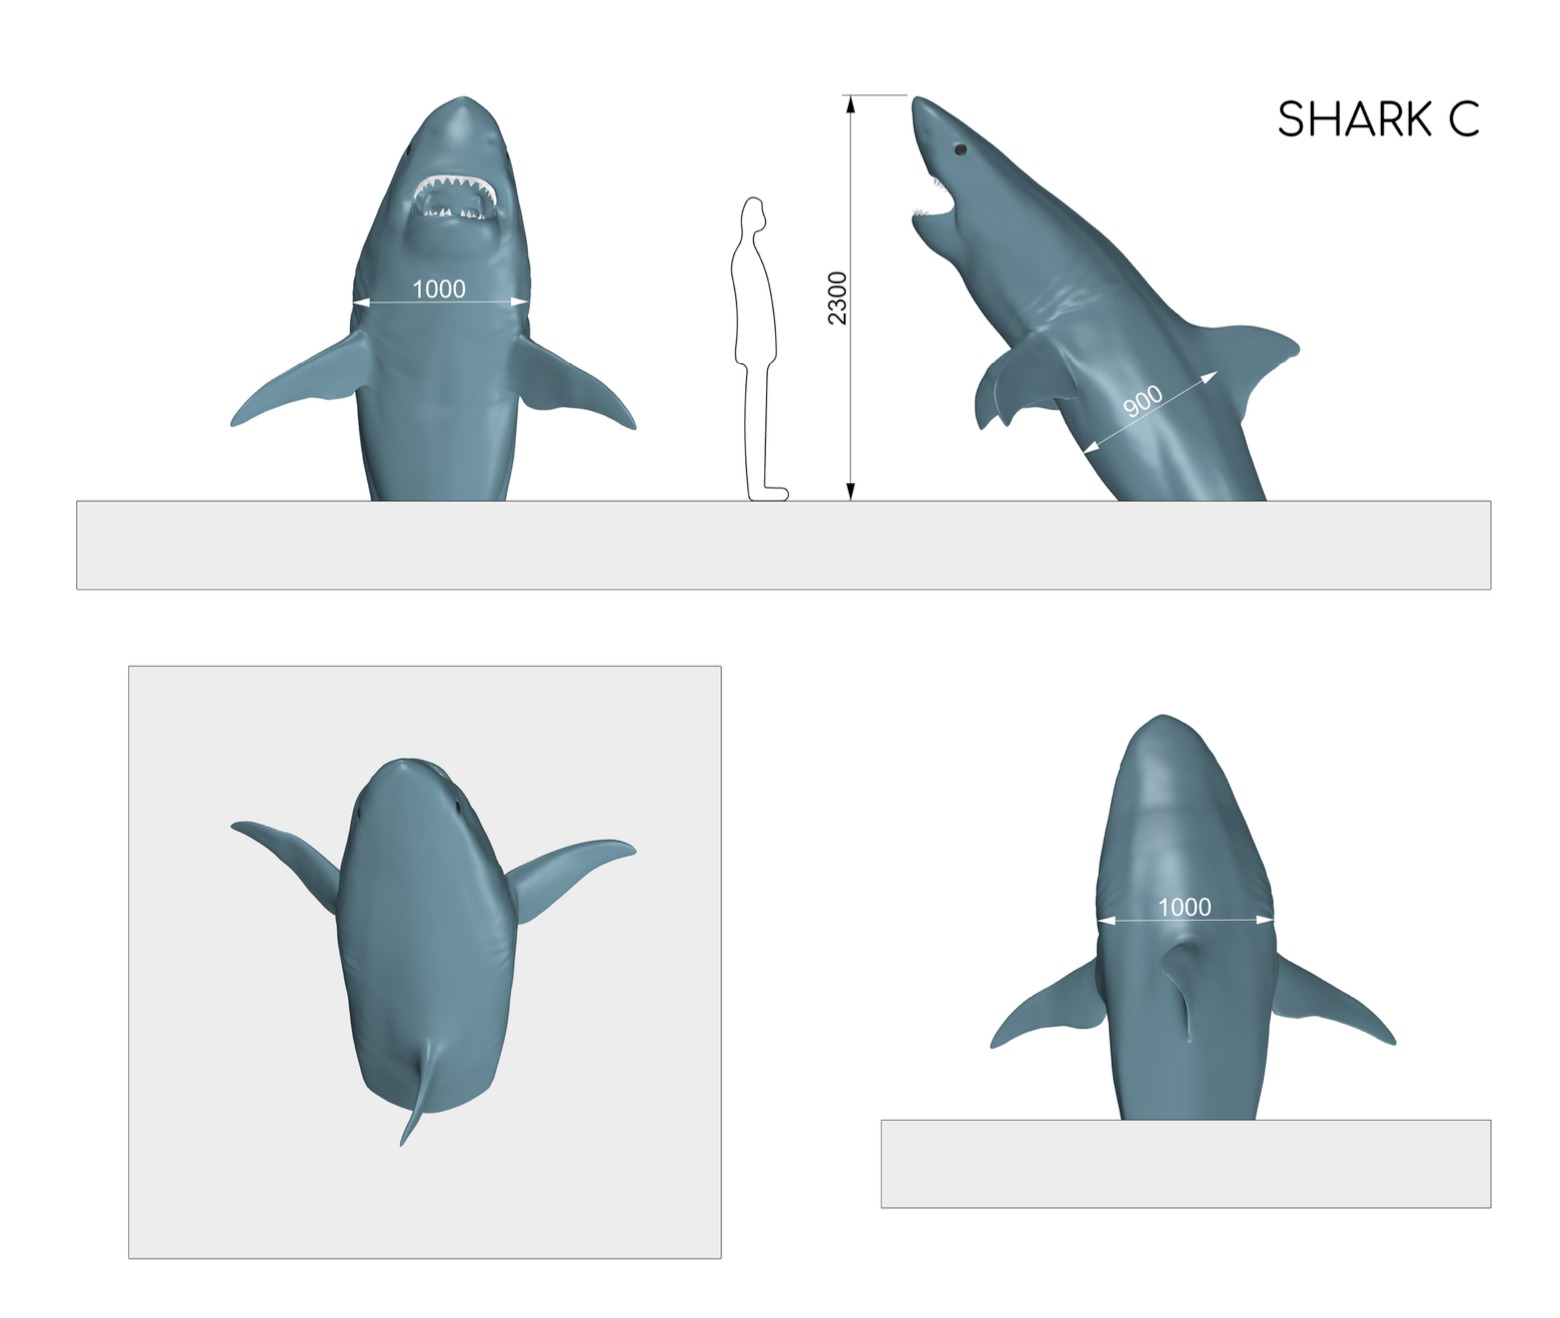 White shark dimensions